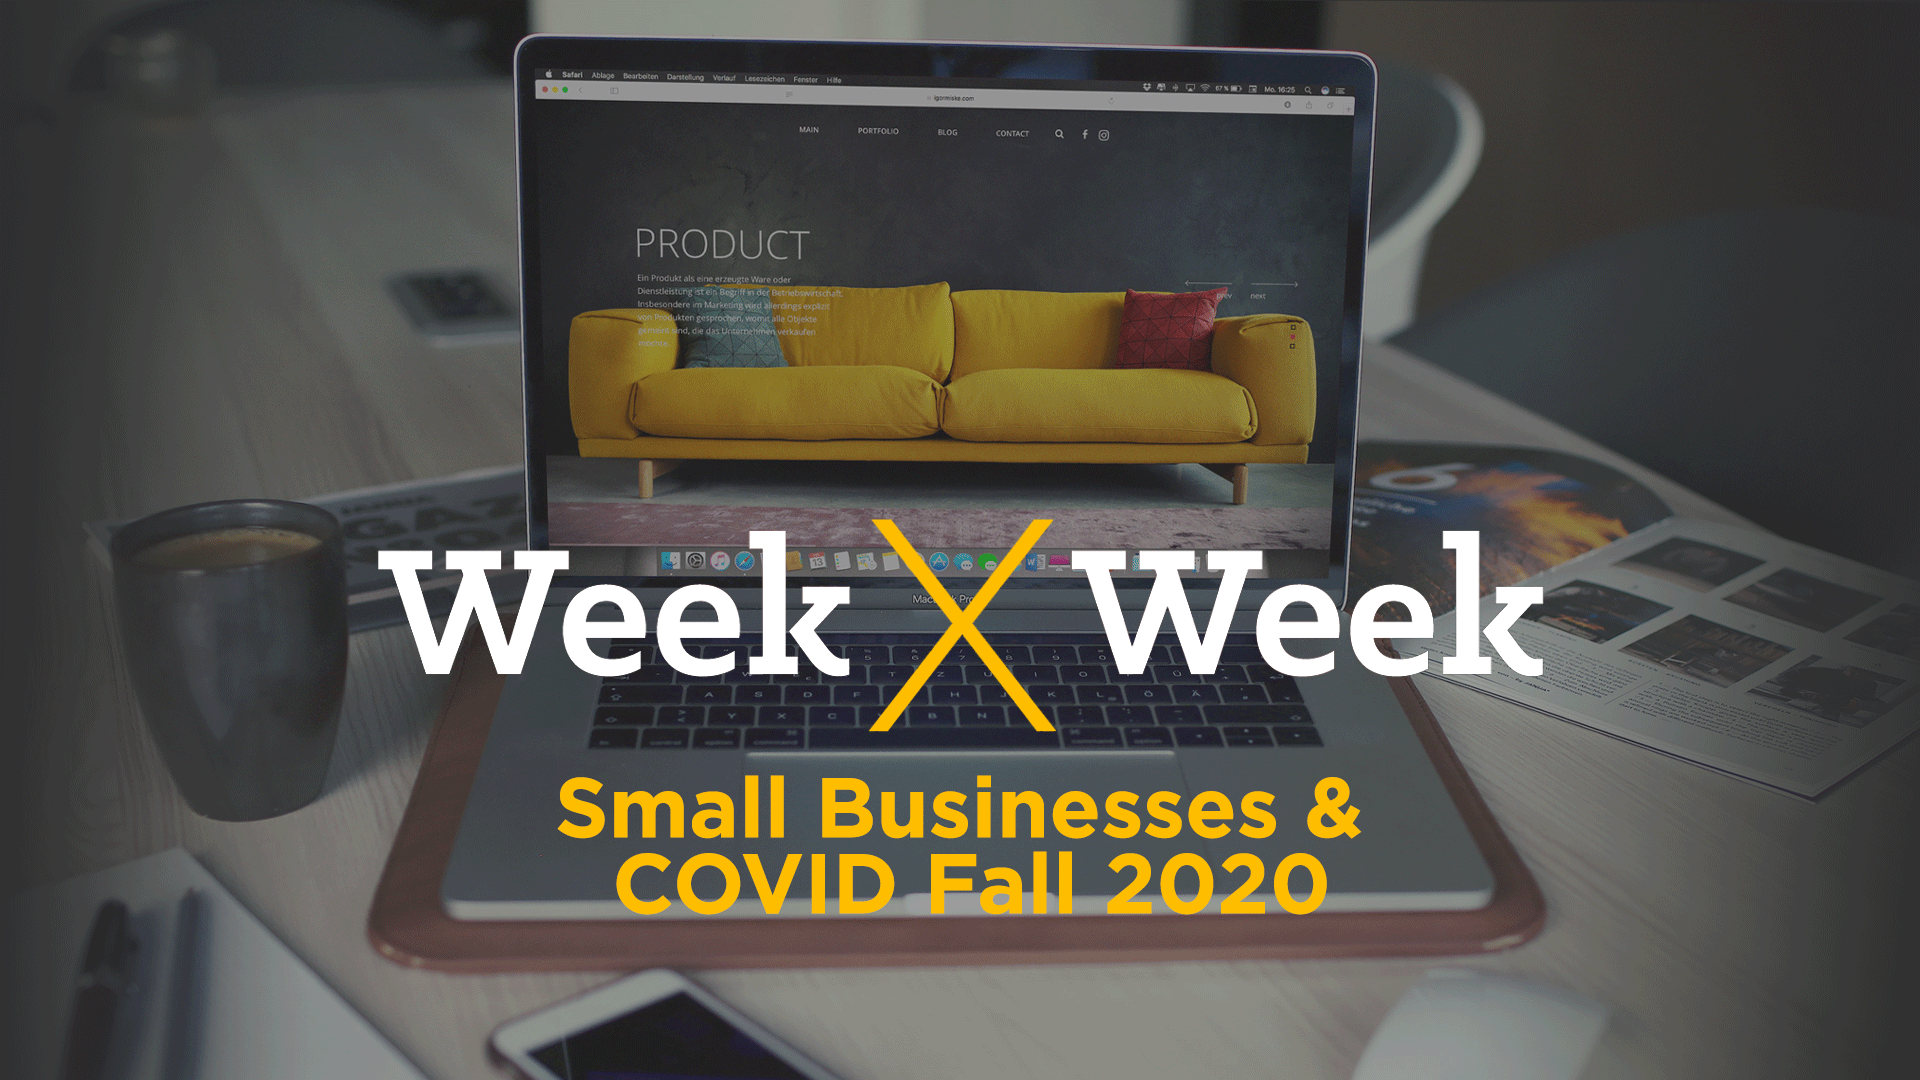 WxW: Small Businesses & COVID Fall 2020 Featured Image